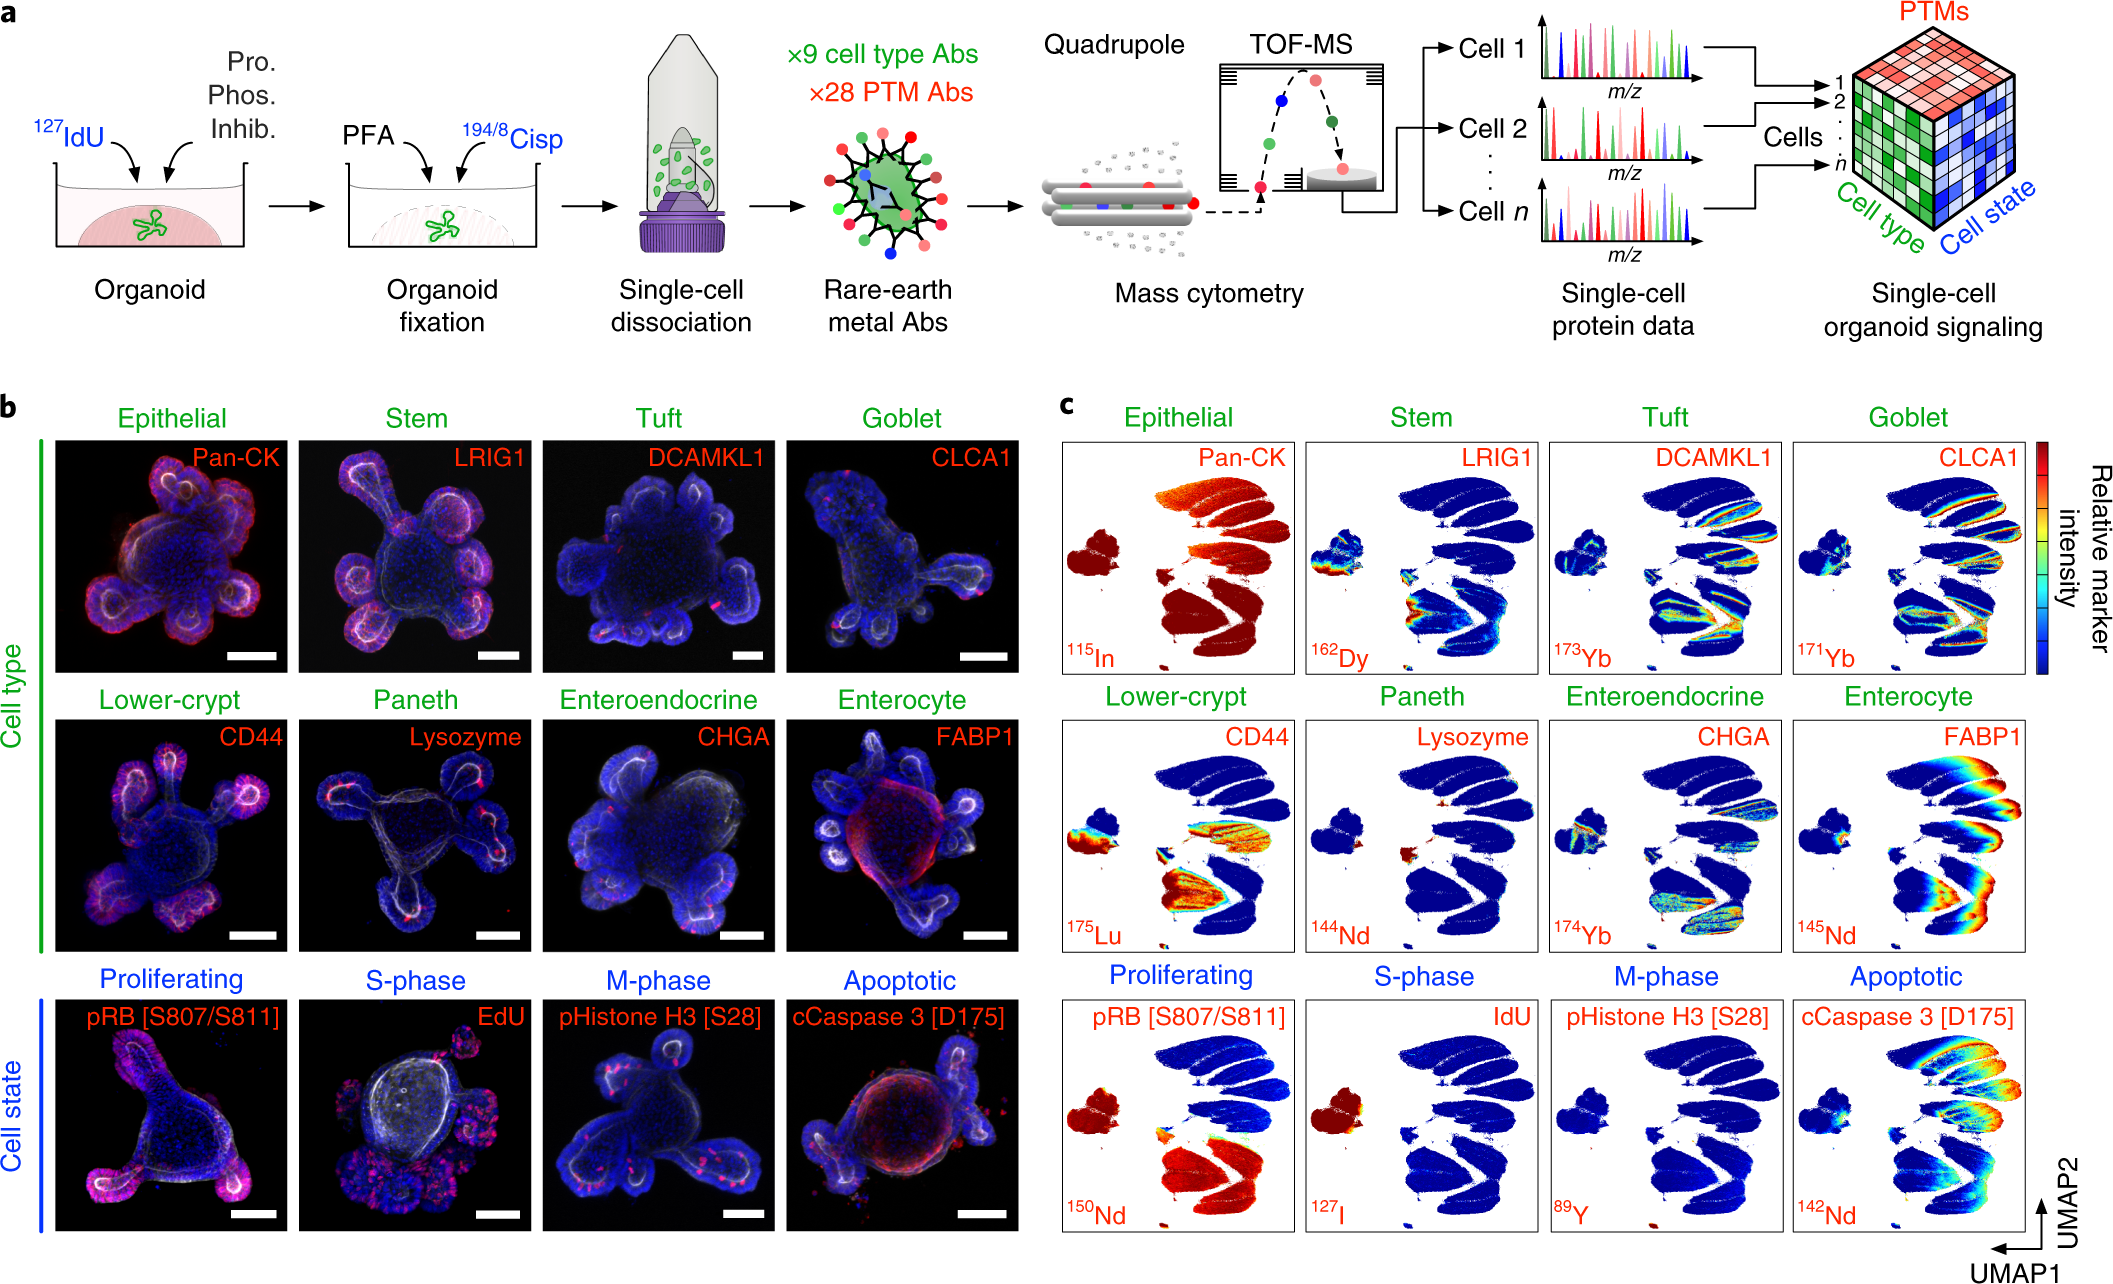 Cell-type-specific signaling networks in heterocellular organoids